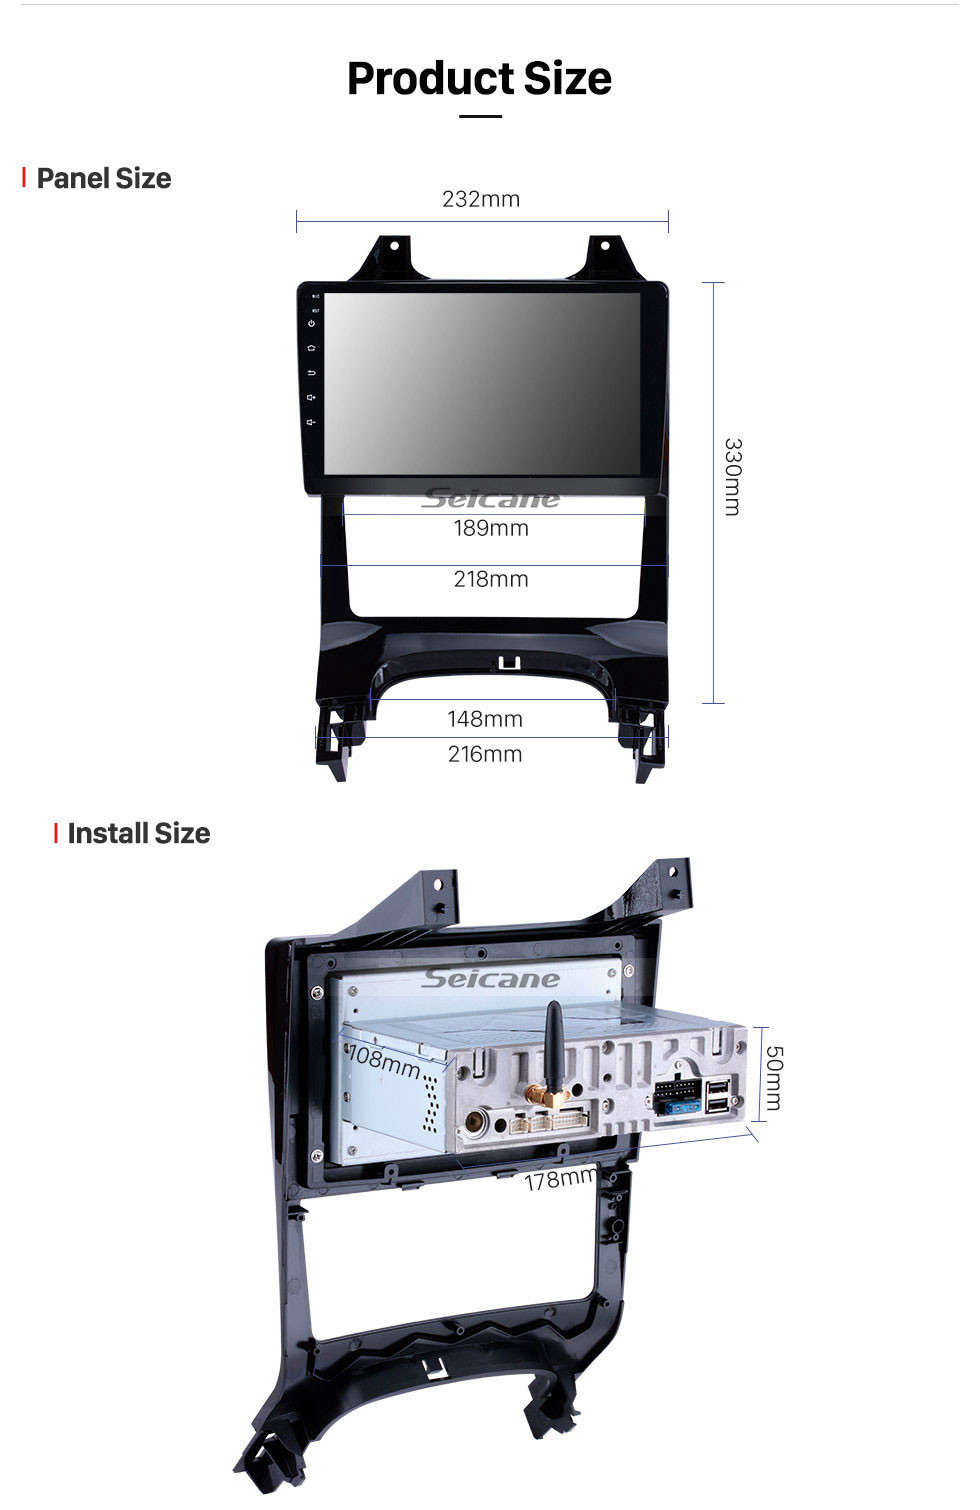 Seicane 2009-2012 Peugeot 3008 9 inch Android 10.0 1024*600 touchscreen Car Stereo Radio GPS Navigation System Bluetooth Music 4G WIFI 1080P Video Steering Wheel Control